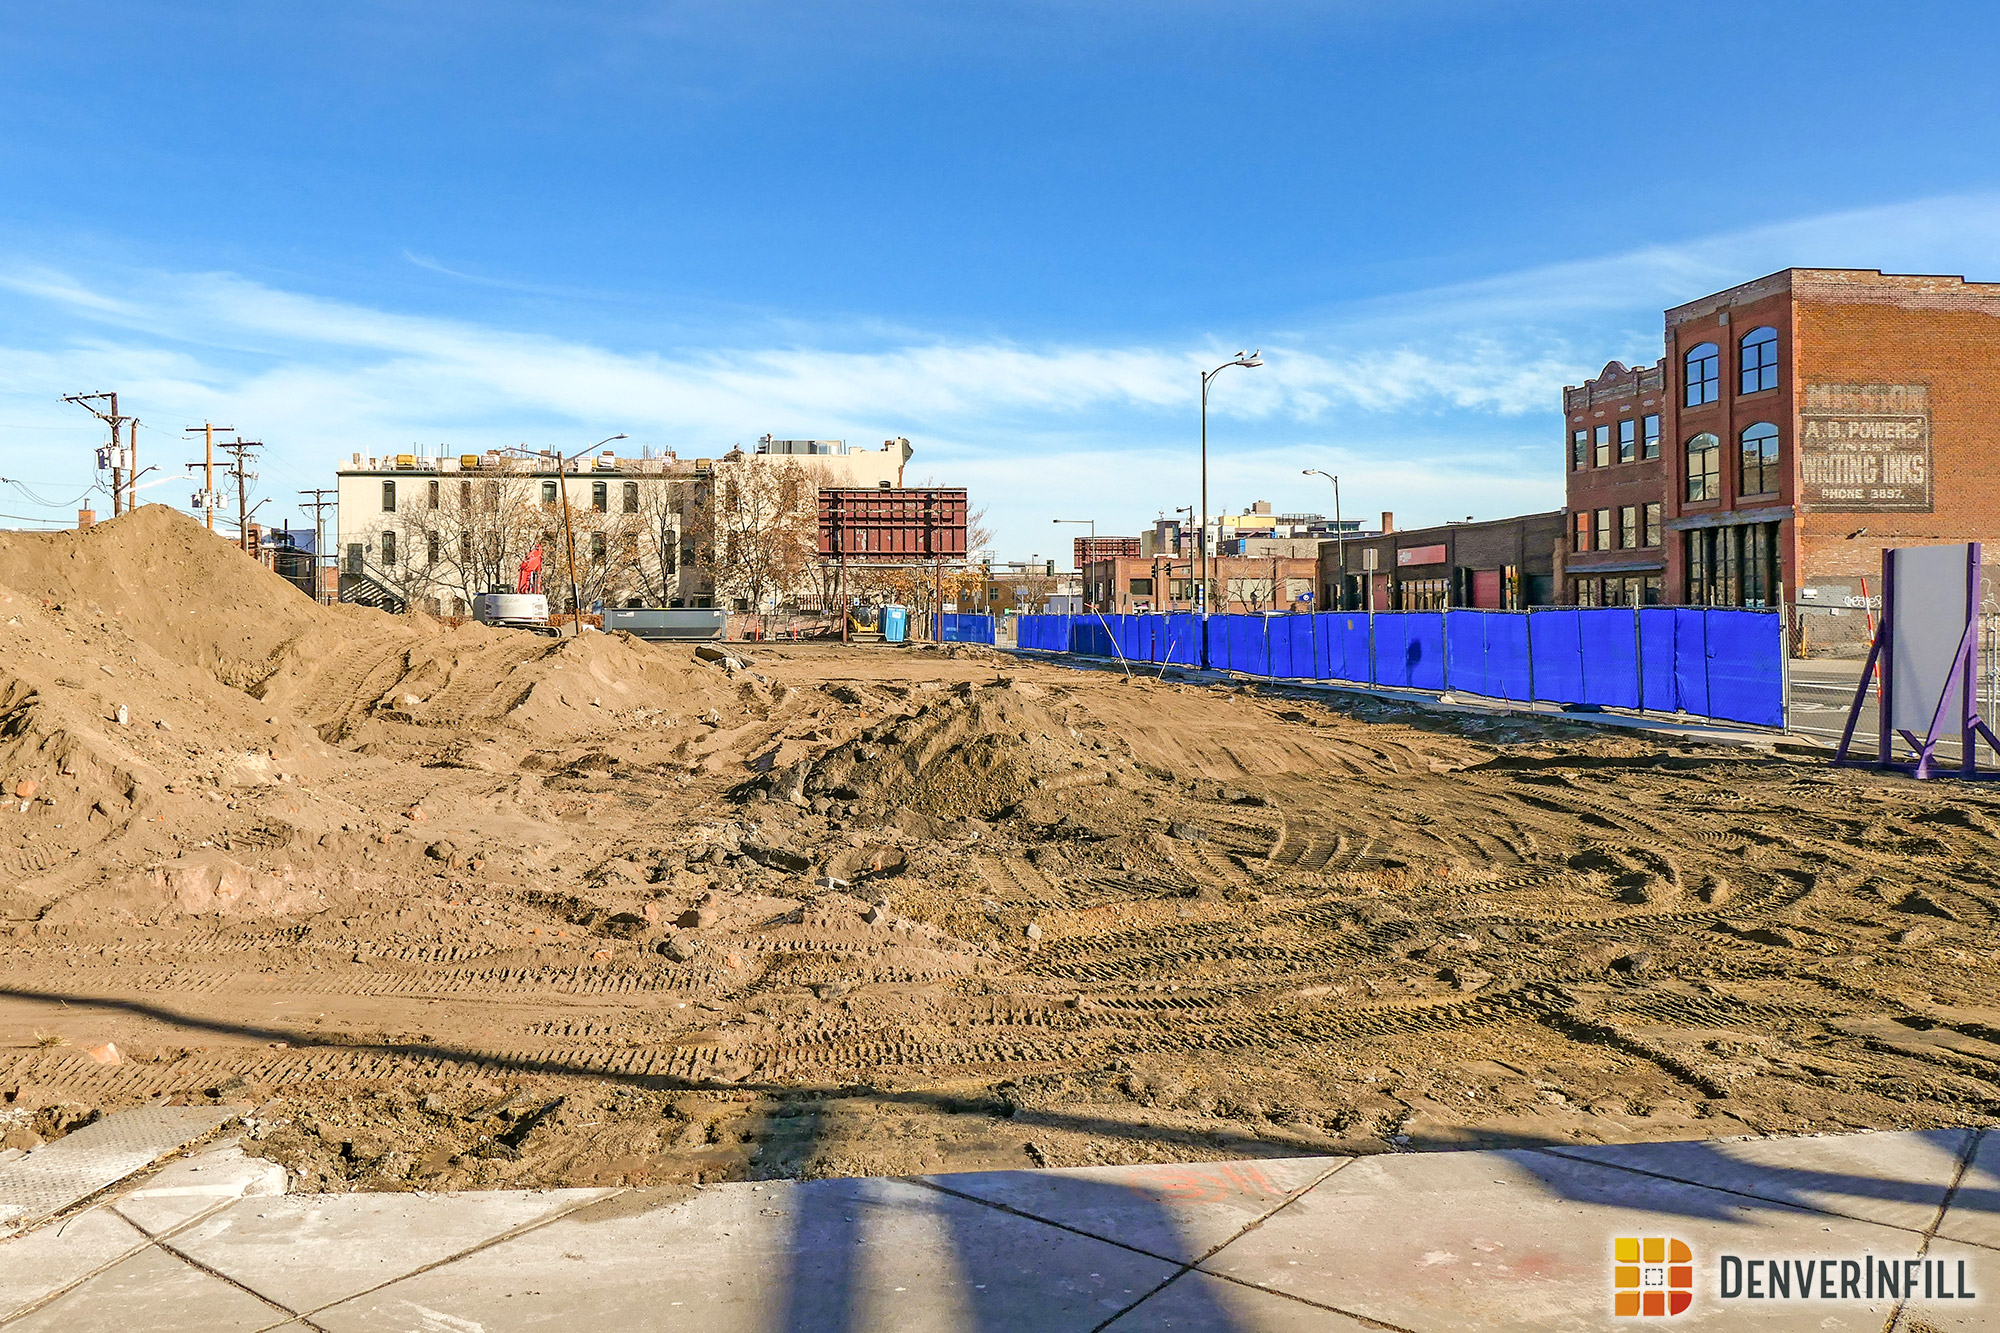 View from 21st Street of construction of the Buell Public Media Center